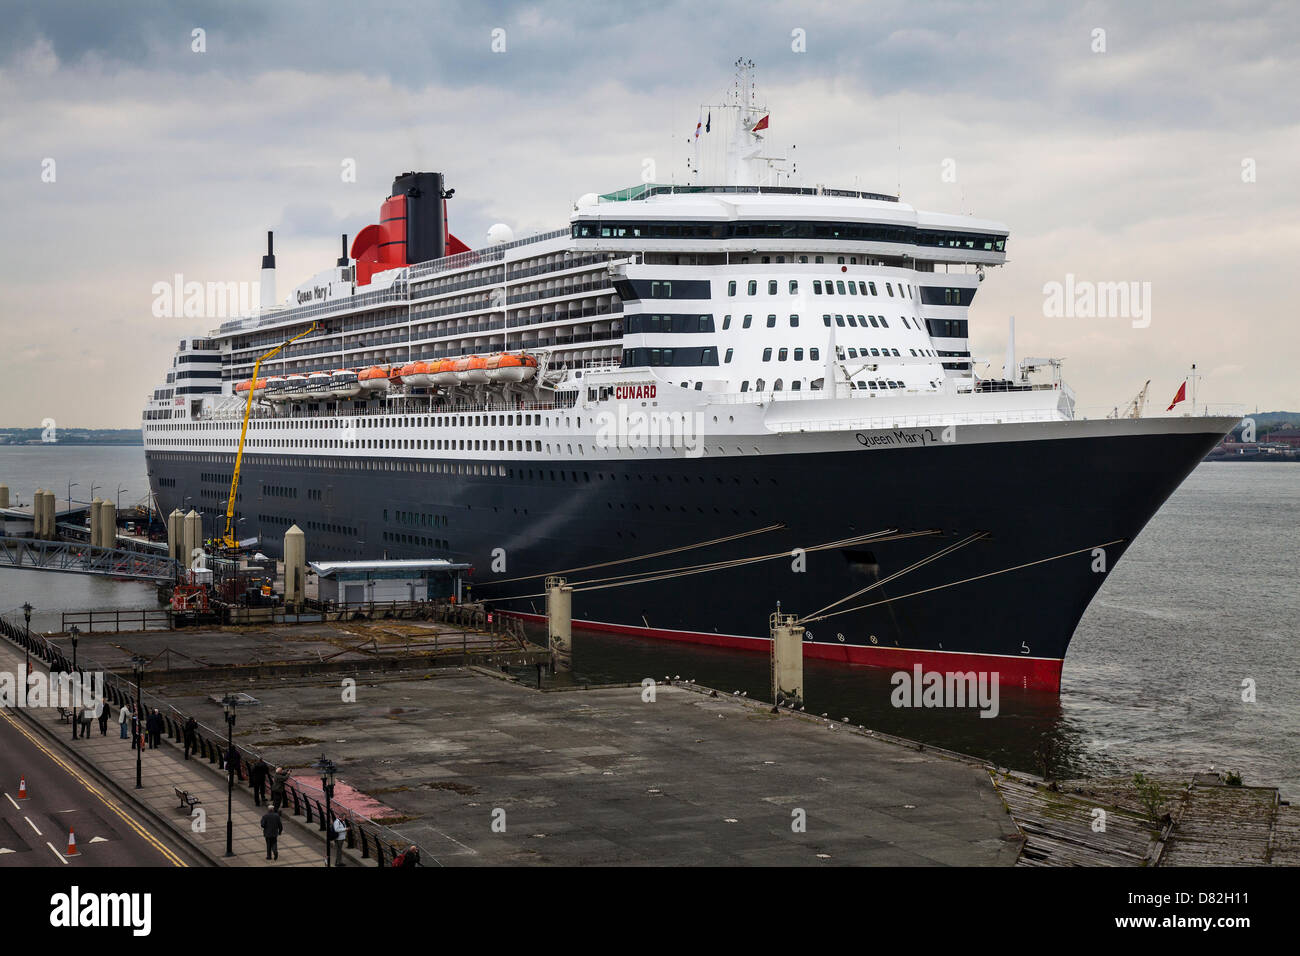 Liverpool, UK 17th May, 2013. The Big luxury Cruise Liner Terminal where the Passenger ship registered in Bermuda - Stock Image